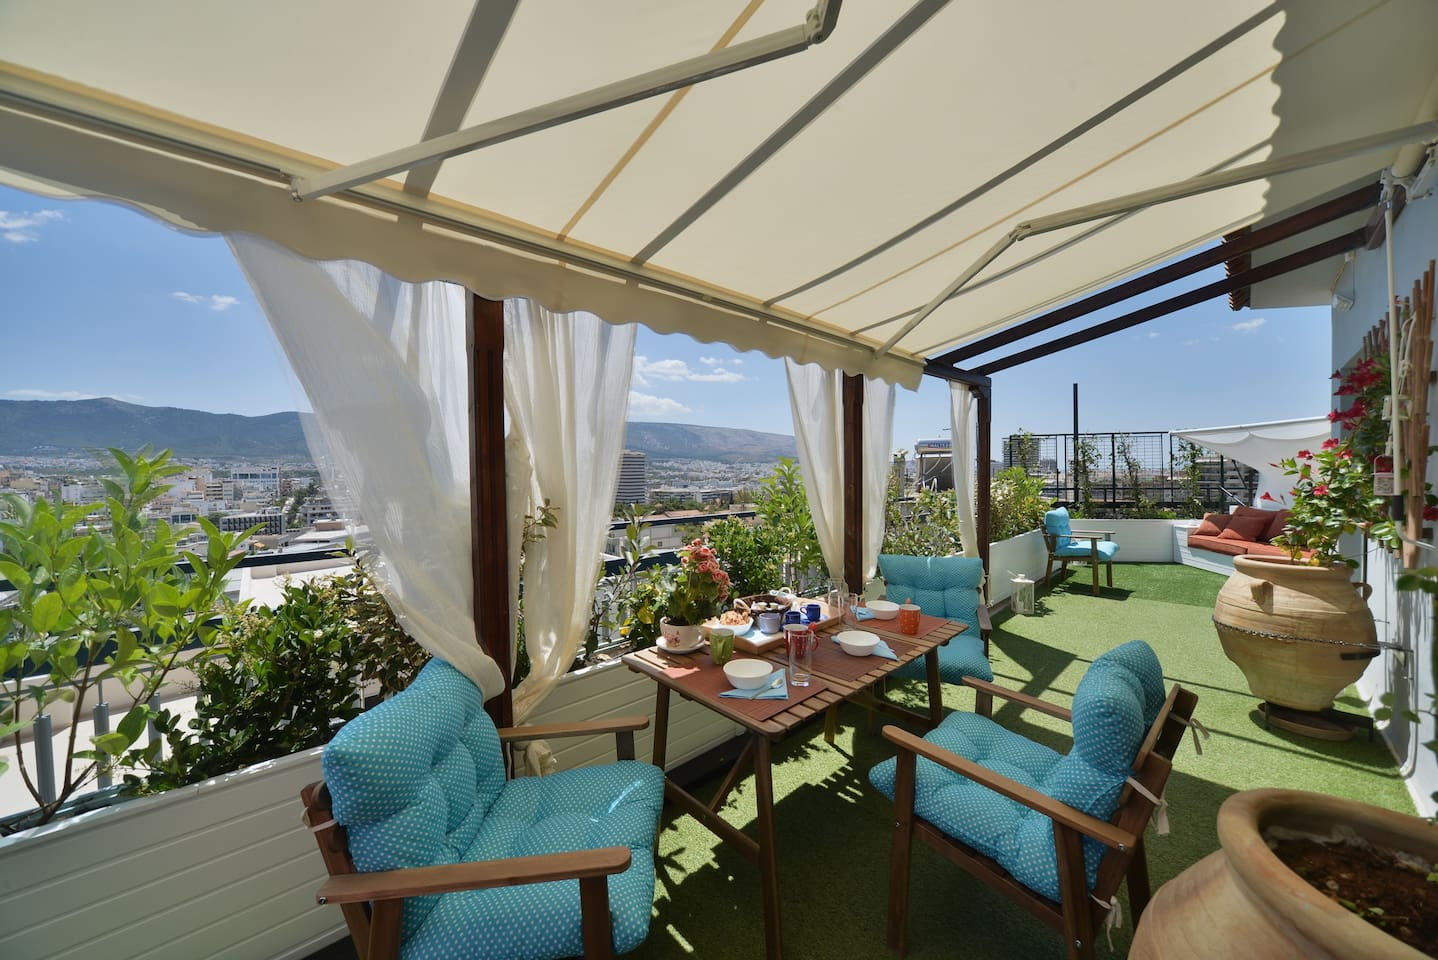 Enjoy a beautiful morning in this terrace